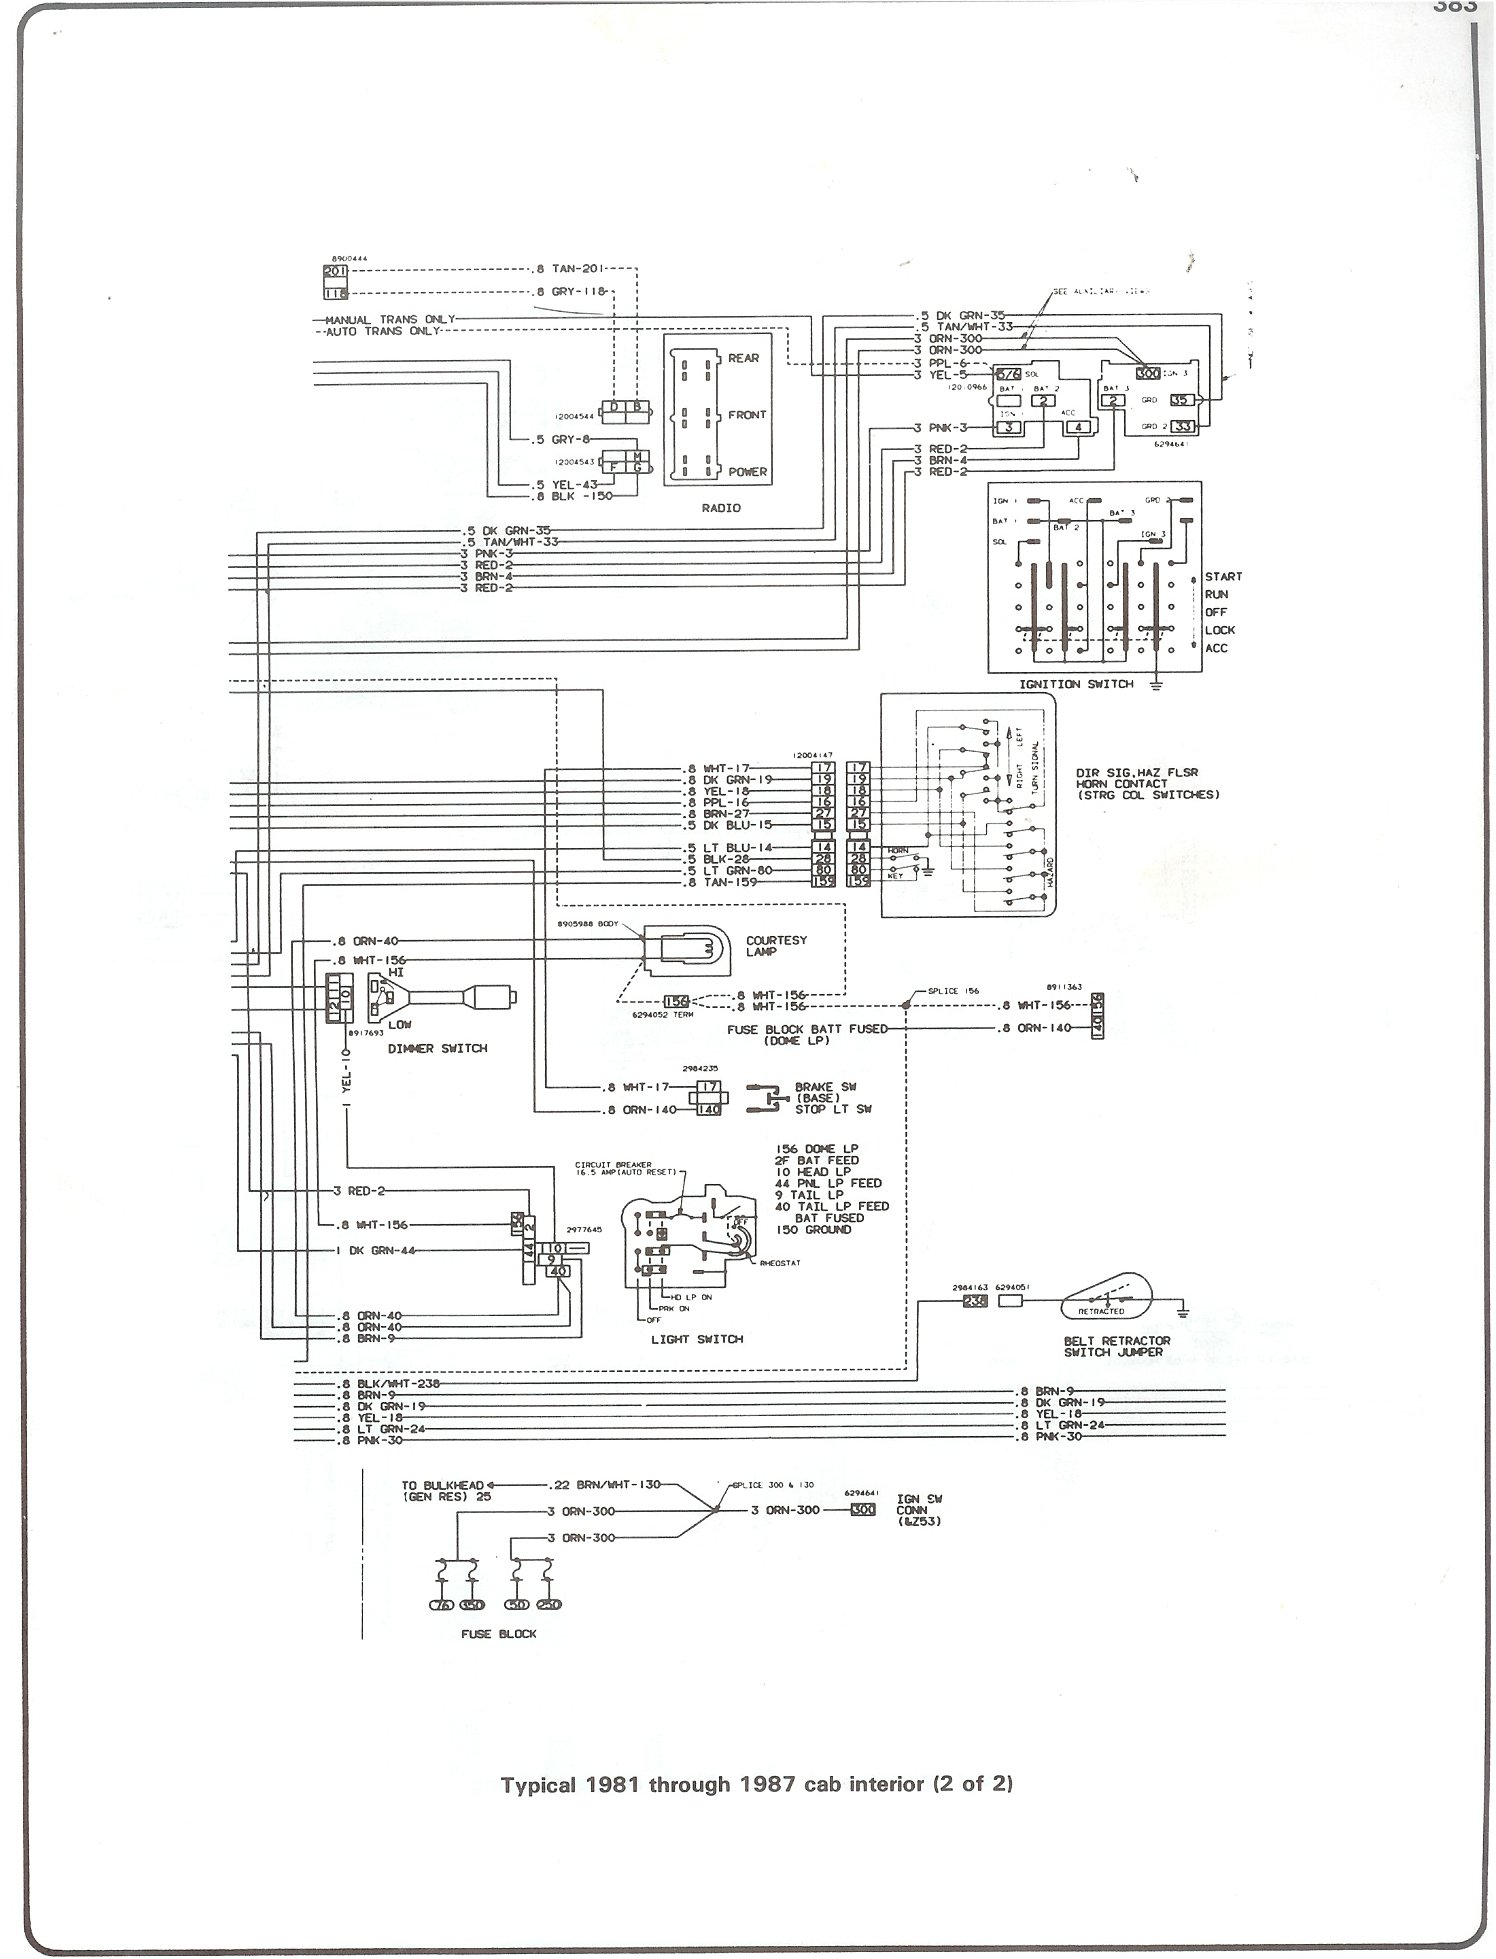 81 87_cab_inter_pg2 brake light switch wiring diagram? blazer forum chevy blazer 87 chevy r10 wiring diagram at gsmx.co